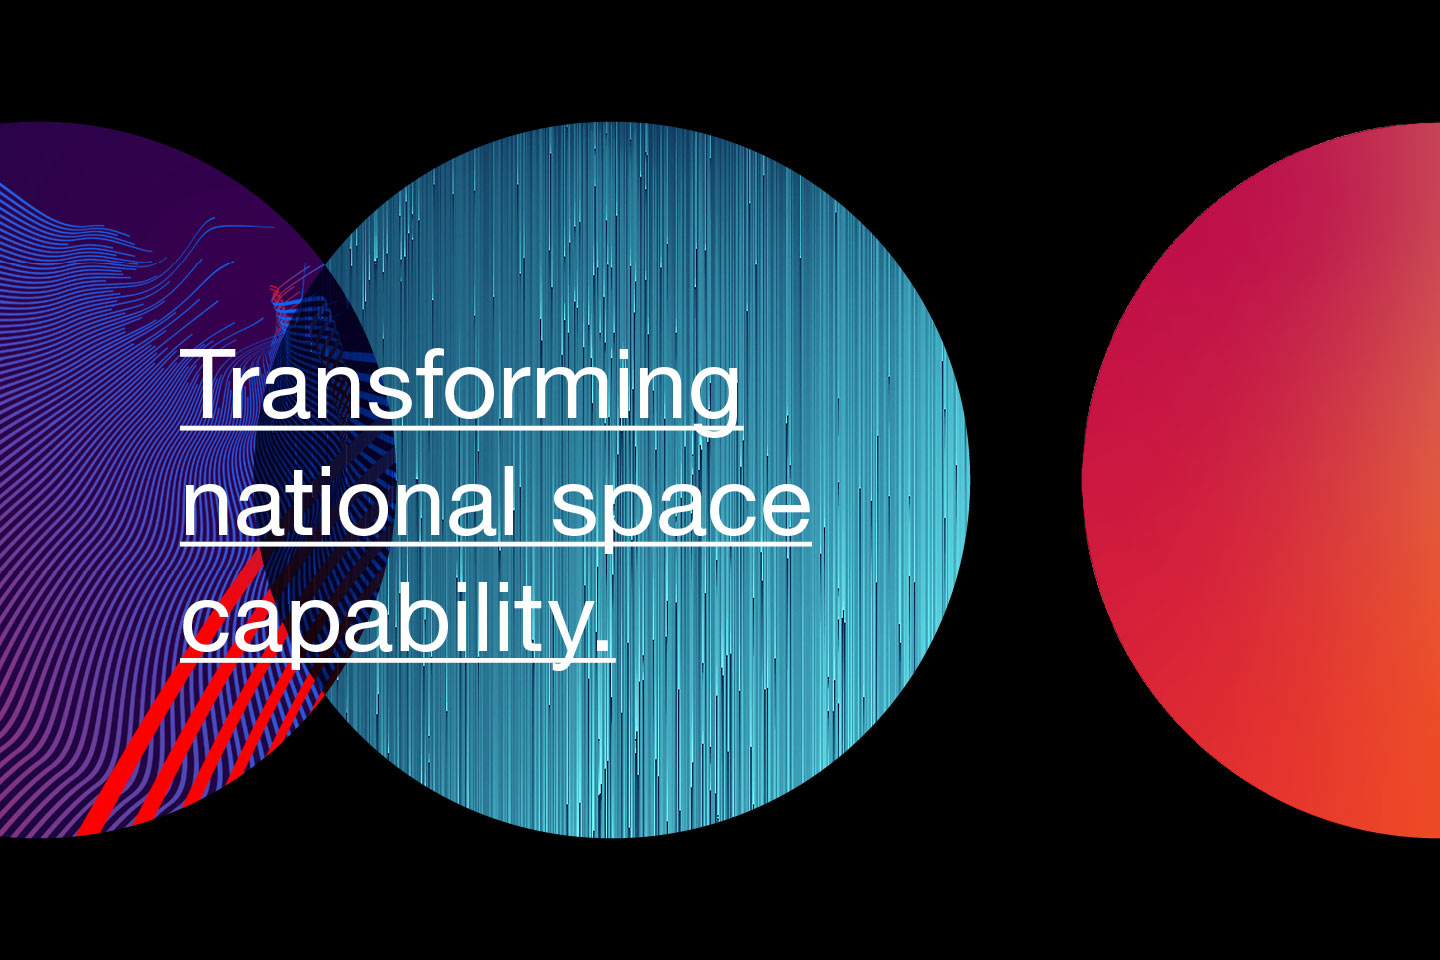 Transforming national space capability